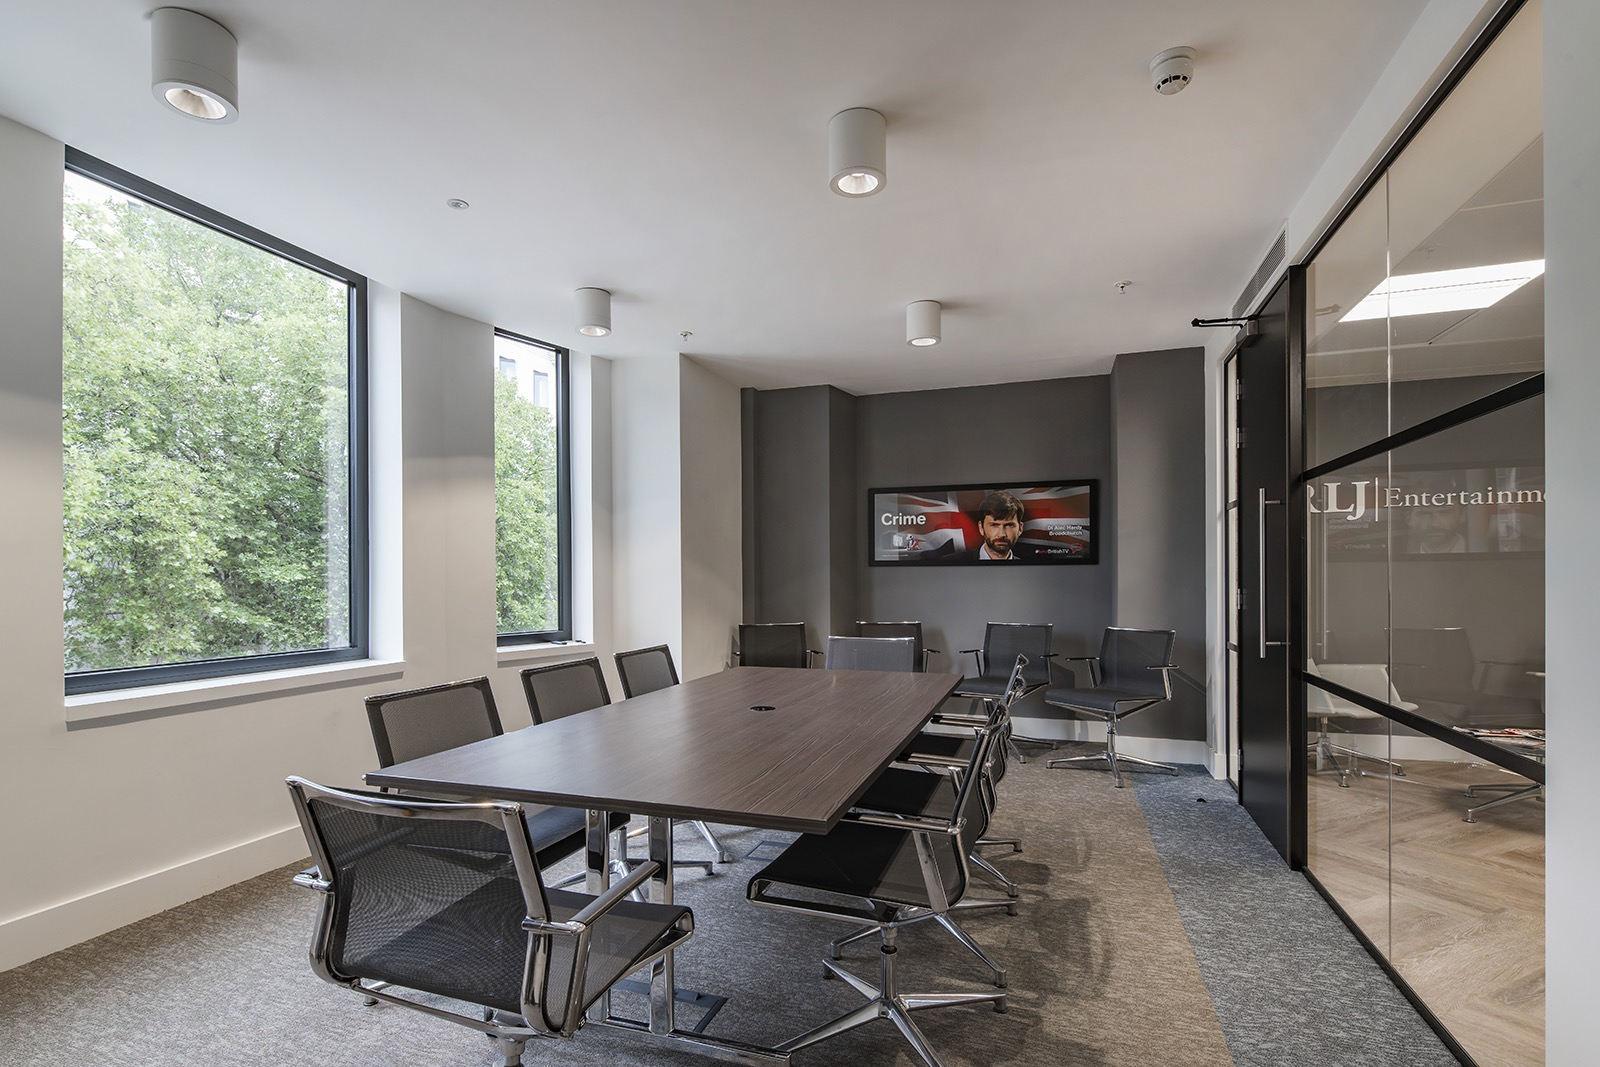 rlj-entertainment-london-office-5